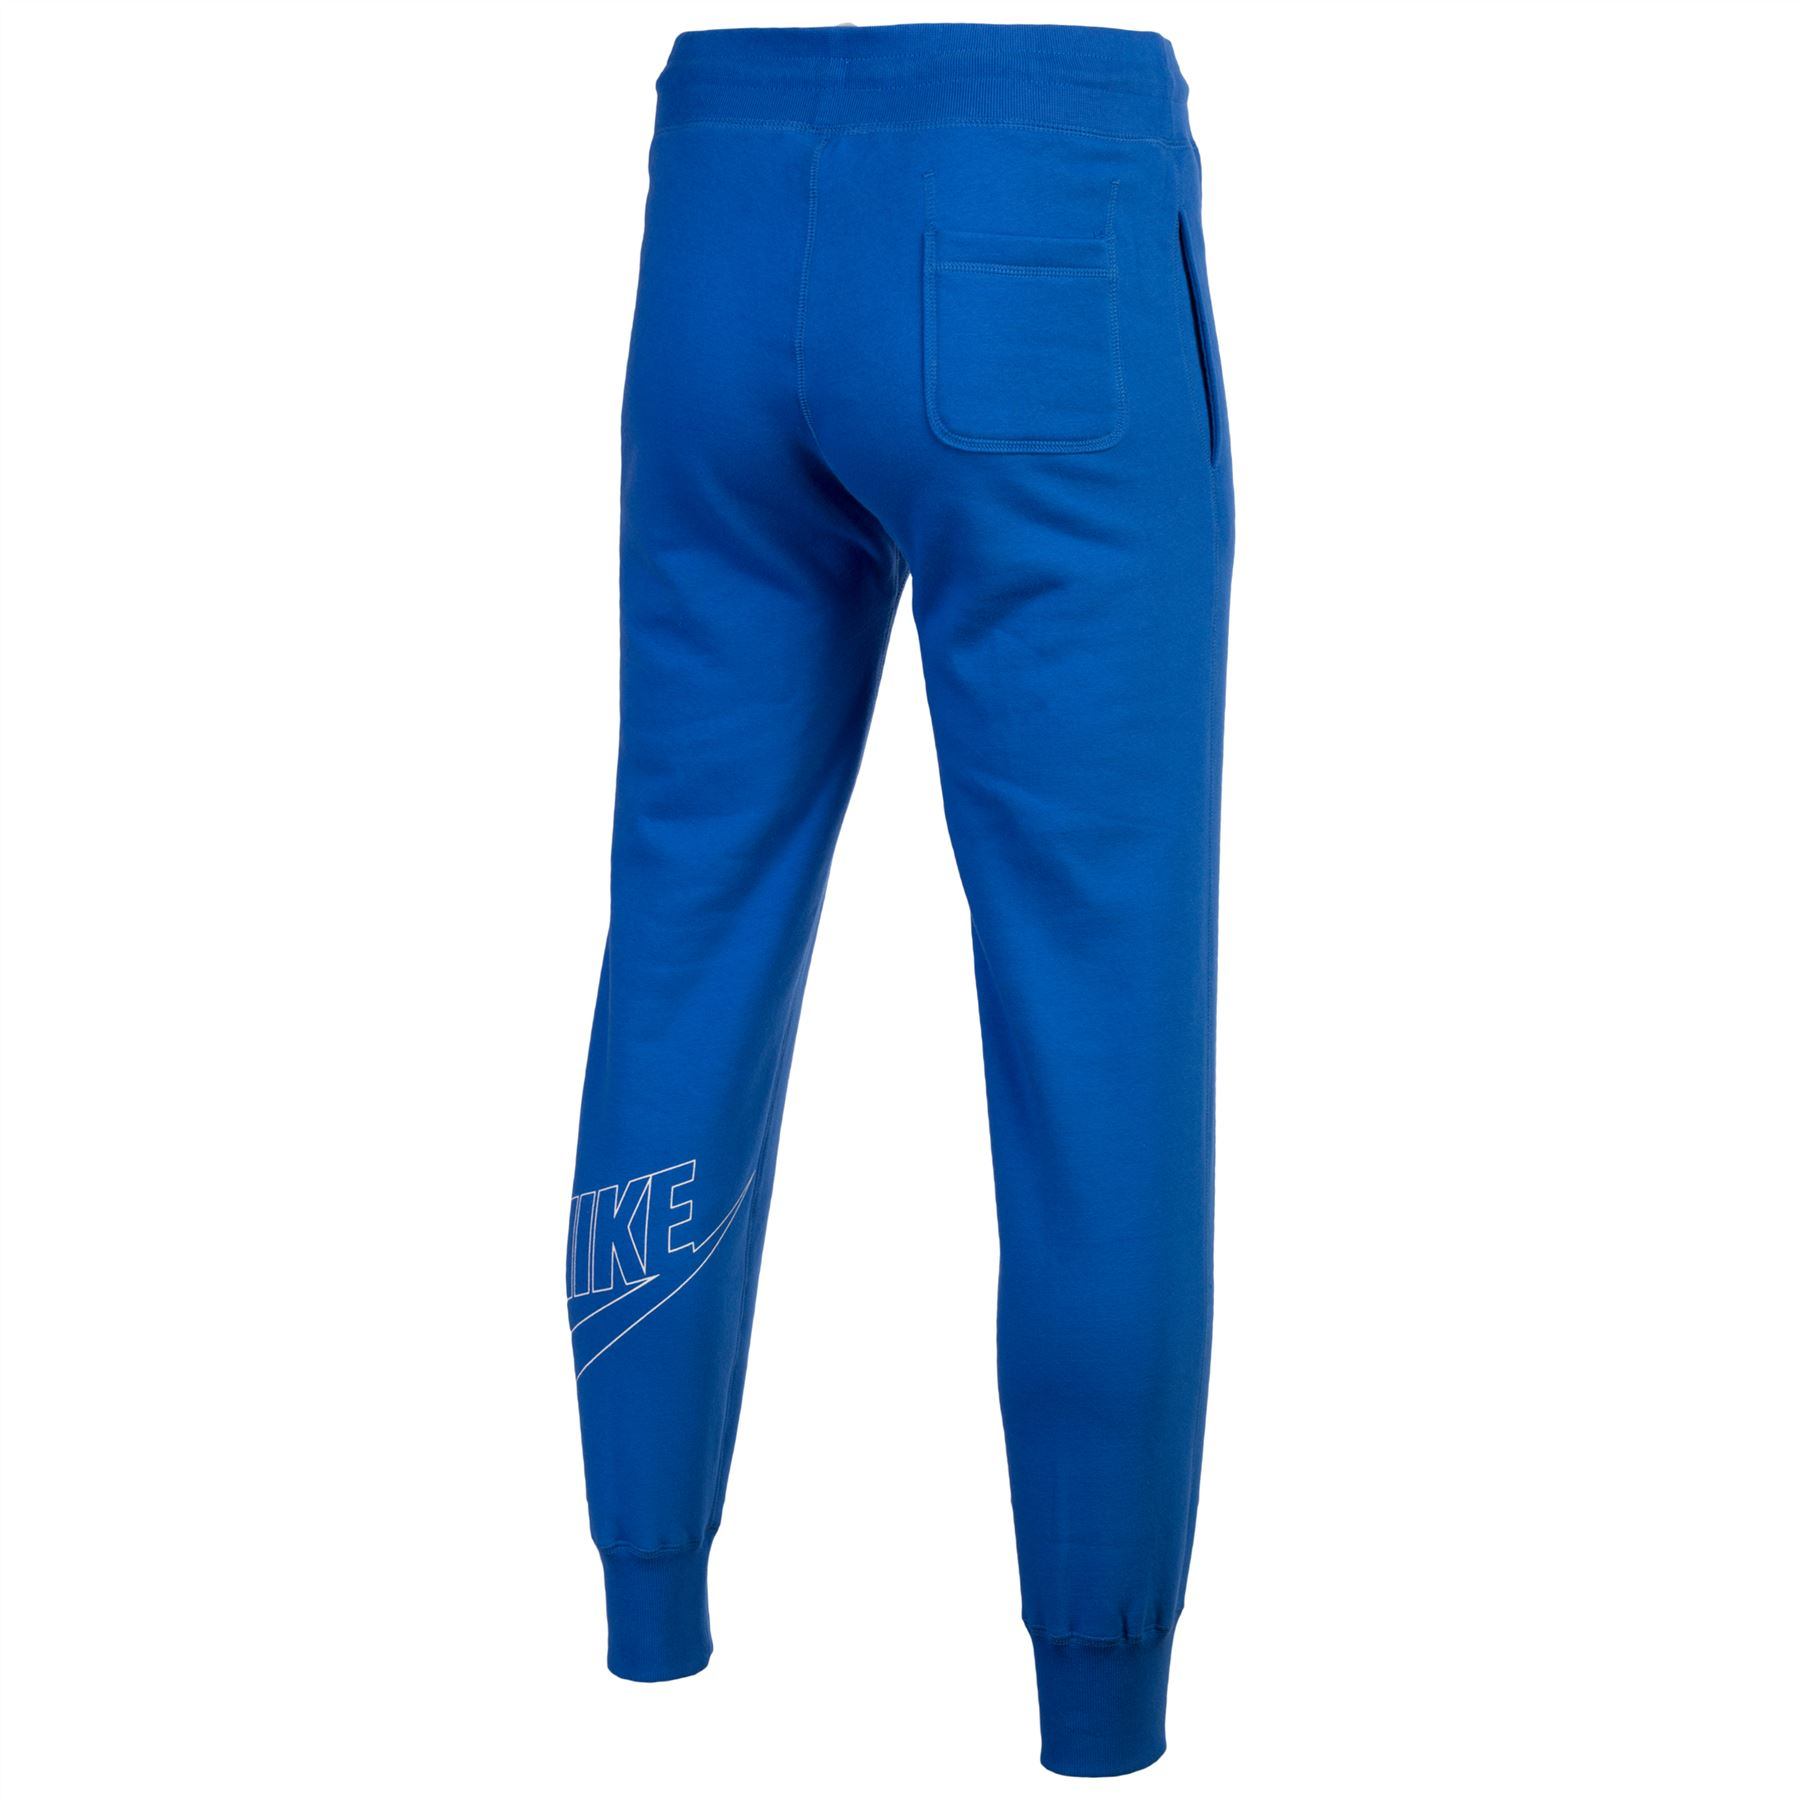 Mens Joggers. Check out the latest arrivals of iconic mens joggers from Superdry. Whether you're looking for classic black joggers, skinny joggers for men or mens jogging bottoms with cuffed ankles, you'll find your favourite styles in the latest colours here. Comfortable, yet cool, in our range of sweatpants you don't have to compromise on style whilst chilling out.